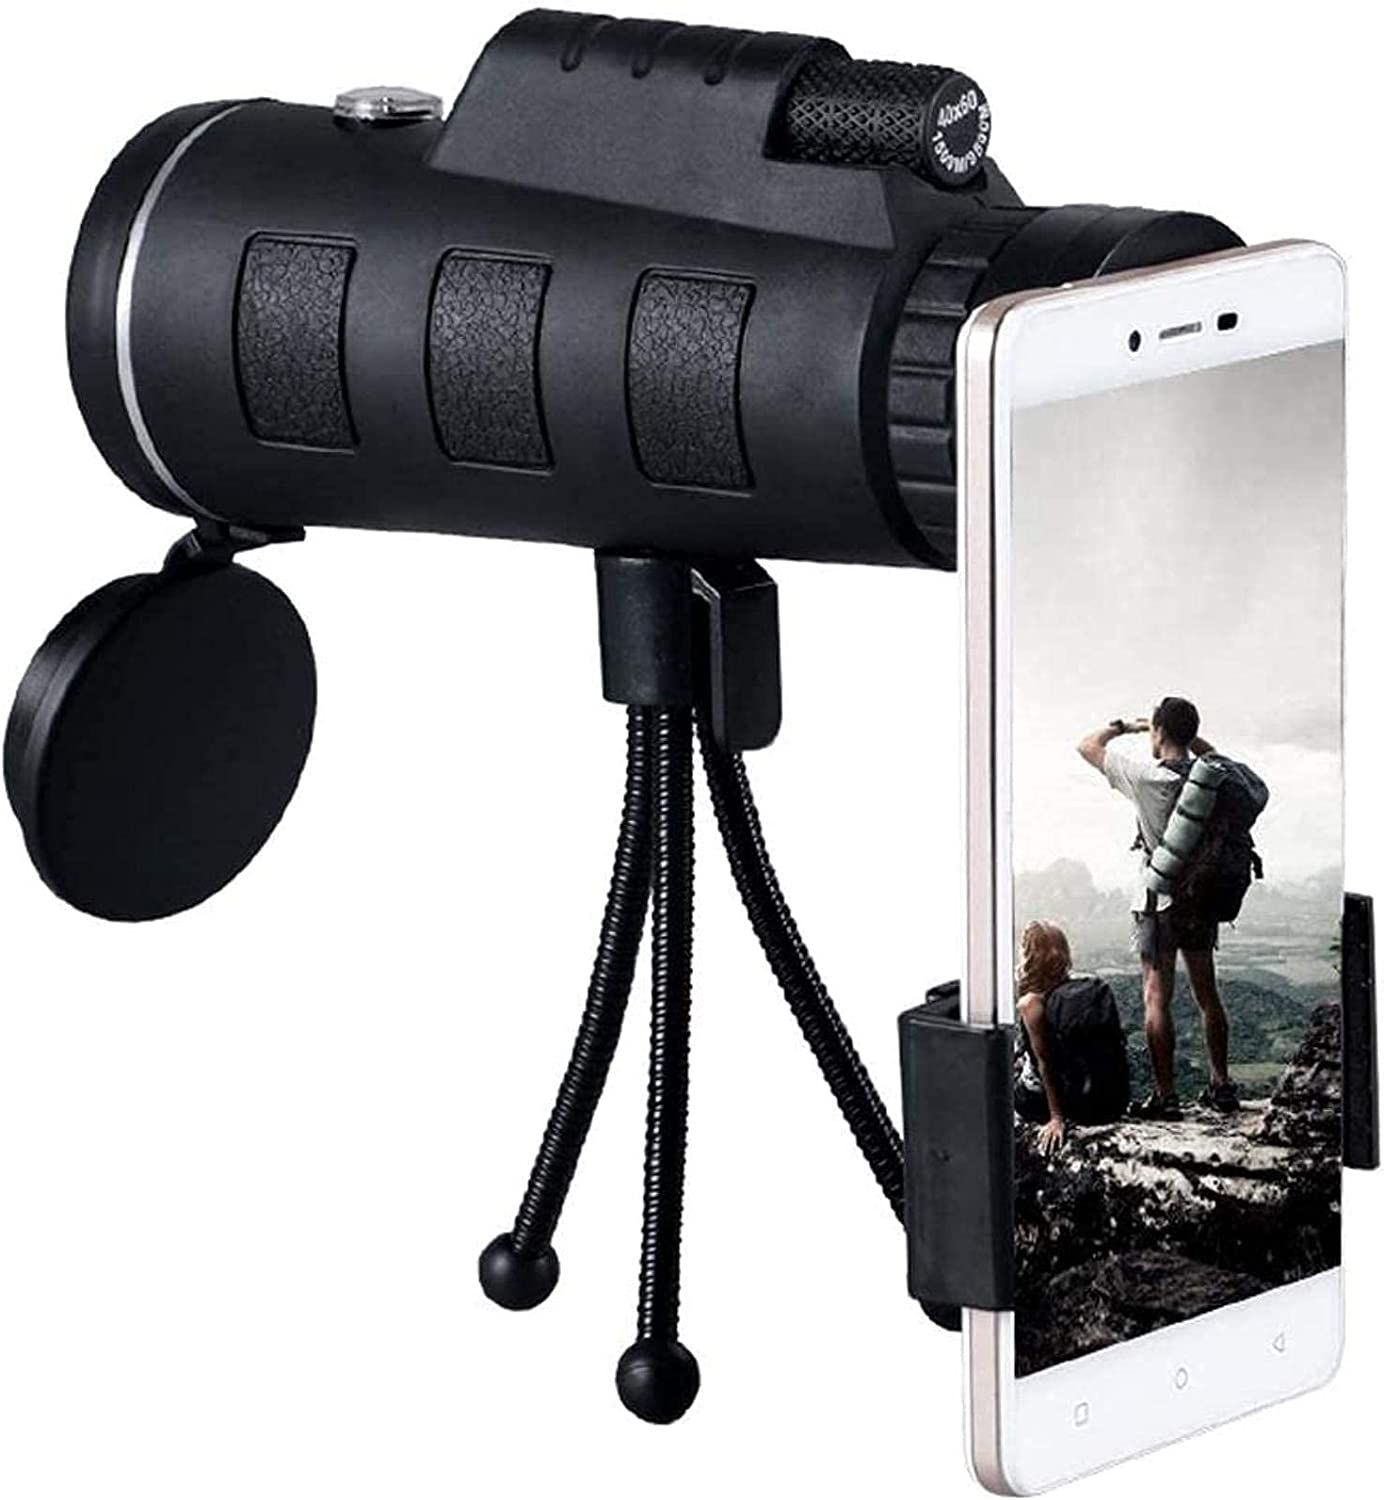 ROM 40x60 High Bombing free shipping Power Monocular Smartphone A Quick with Outlet SALE Telescope